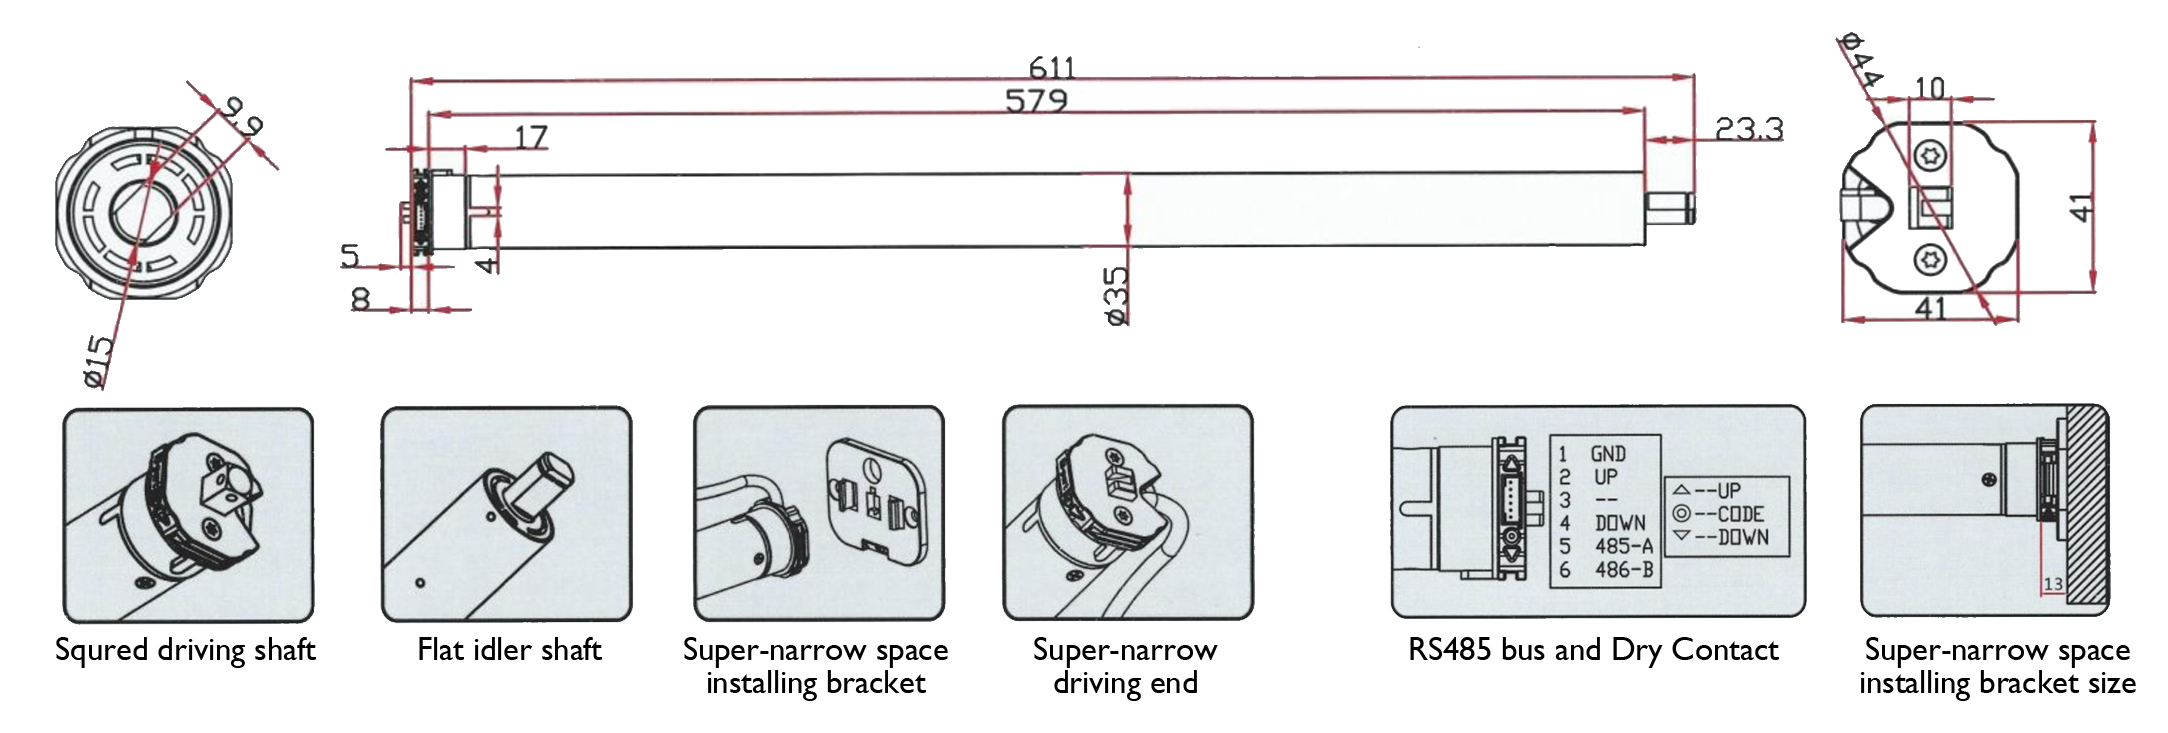 Rs485 Wiring Guide Free Diagram For You 2 Wire Automatic Curtain Remote Controlled Roller 4 Db9